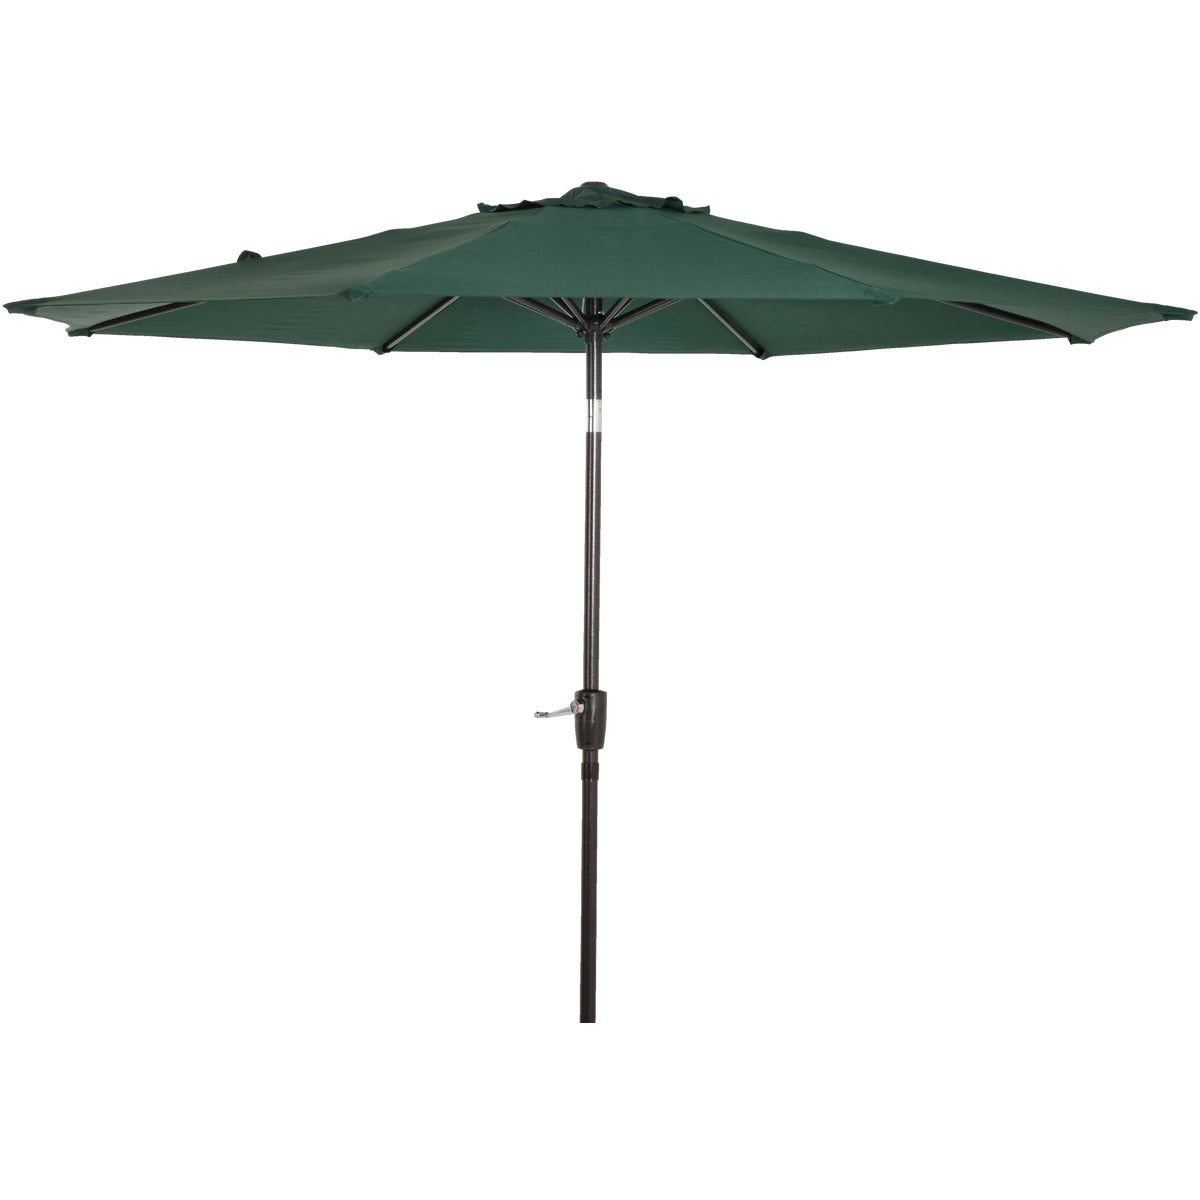 9' GREEN ALUM UMBRELLA - TJAU-004A-270-GRN by Do it Best